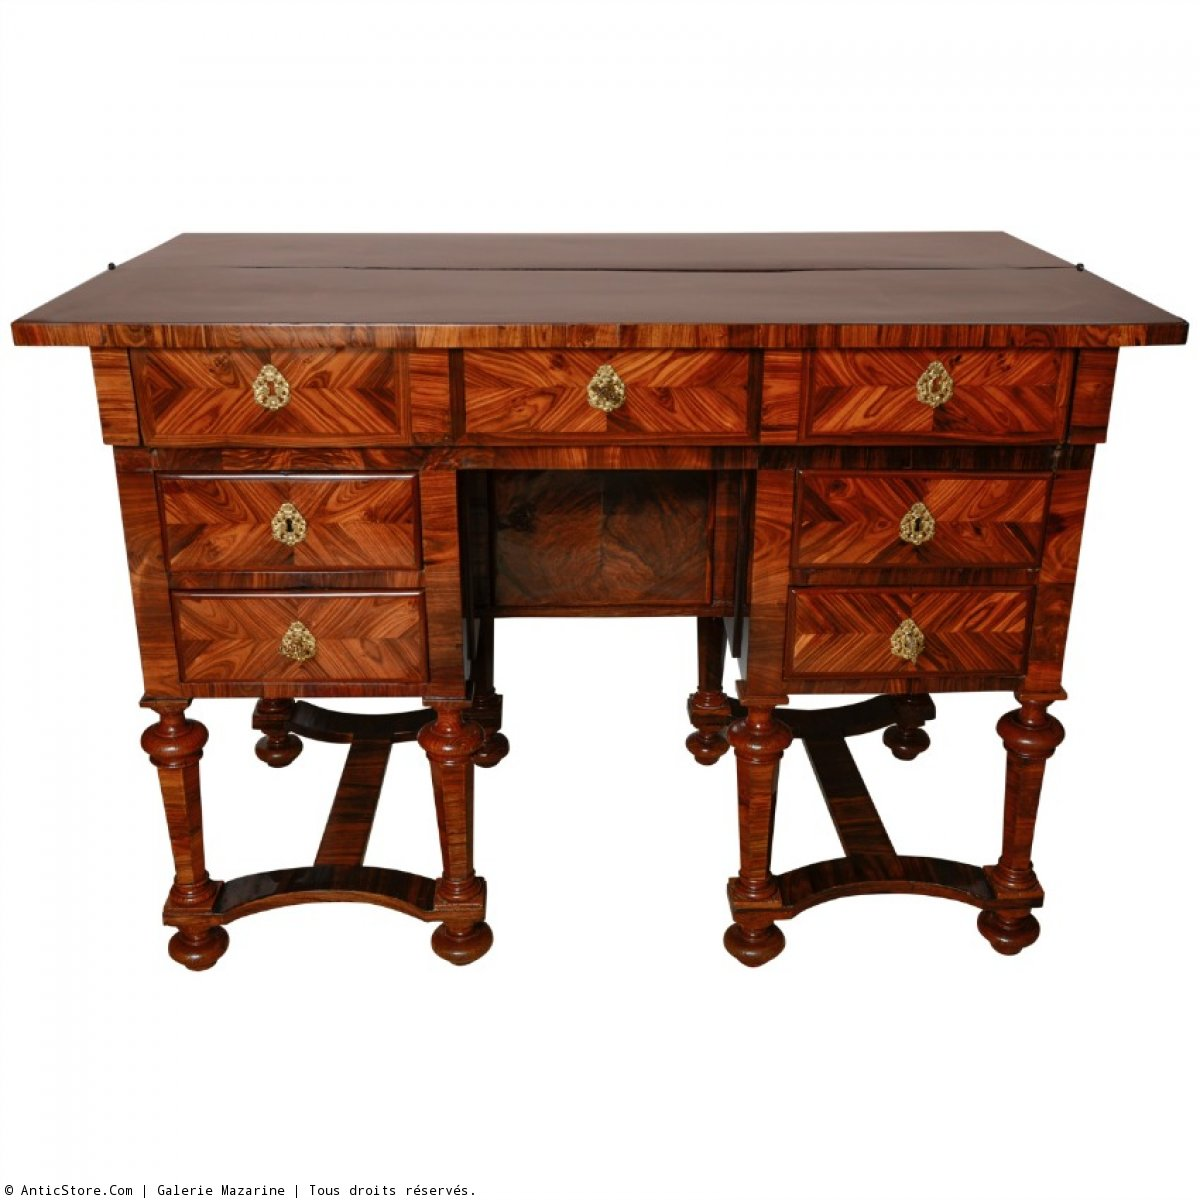 bureau et secr taire louis xiv antiquit s sur anticstore. Black Bedroom Furniture Sets. Home Design Ideas